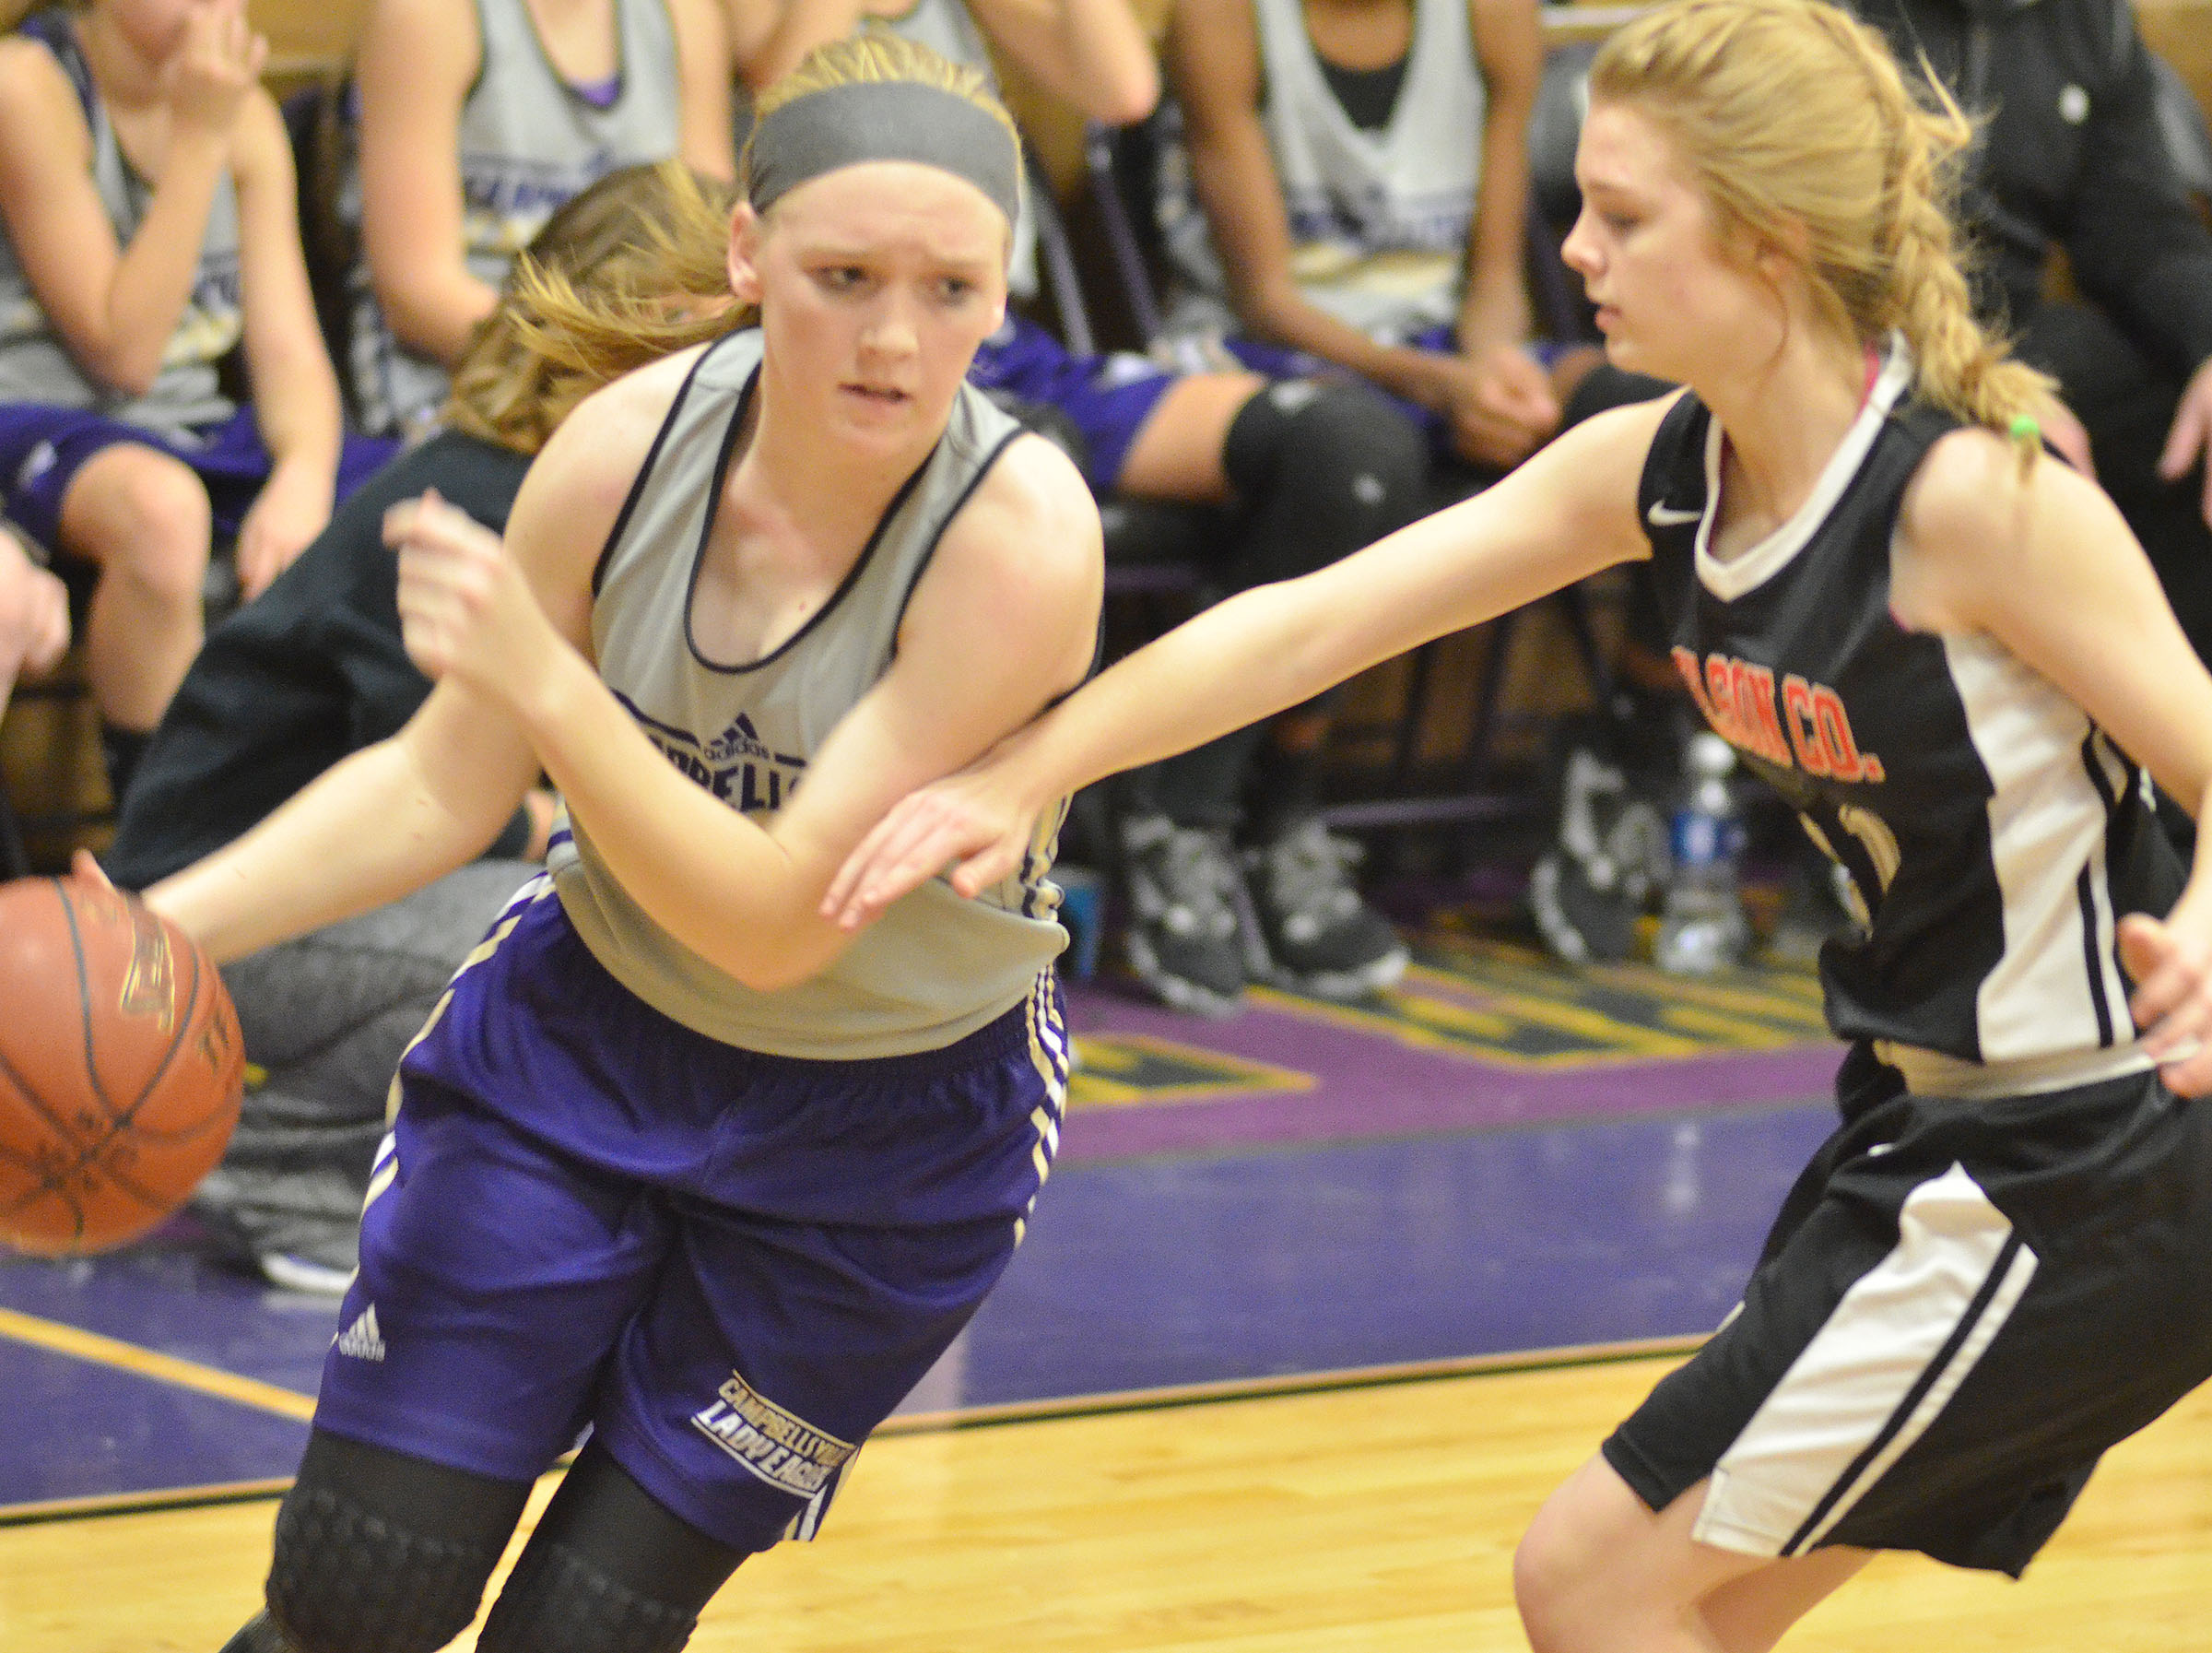 Campbellsville Middle School eighth-grader Catlyn Clausen drives the ball.